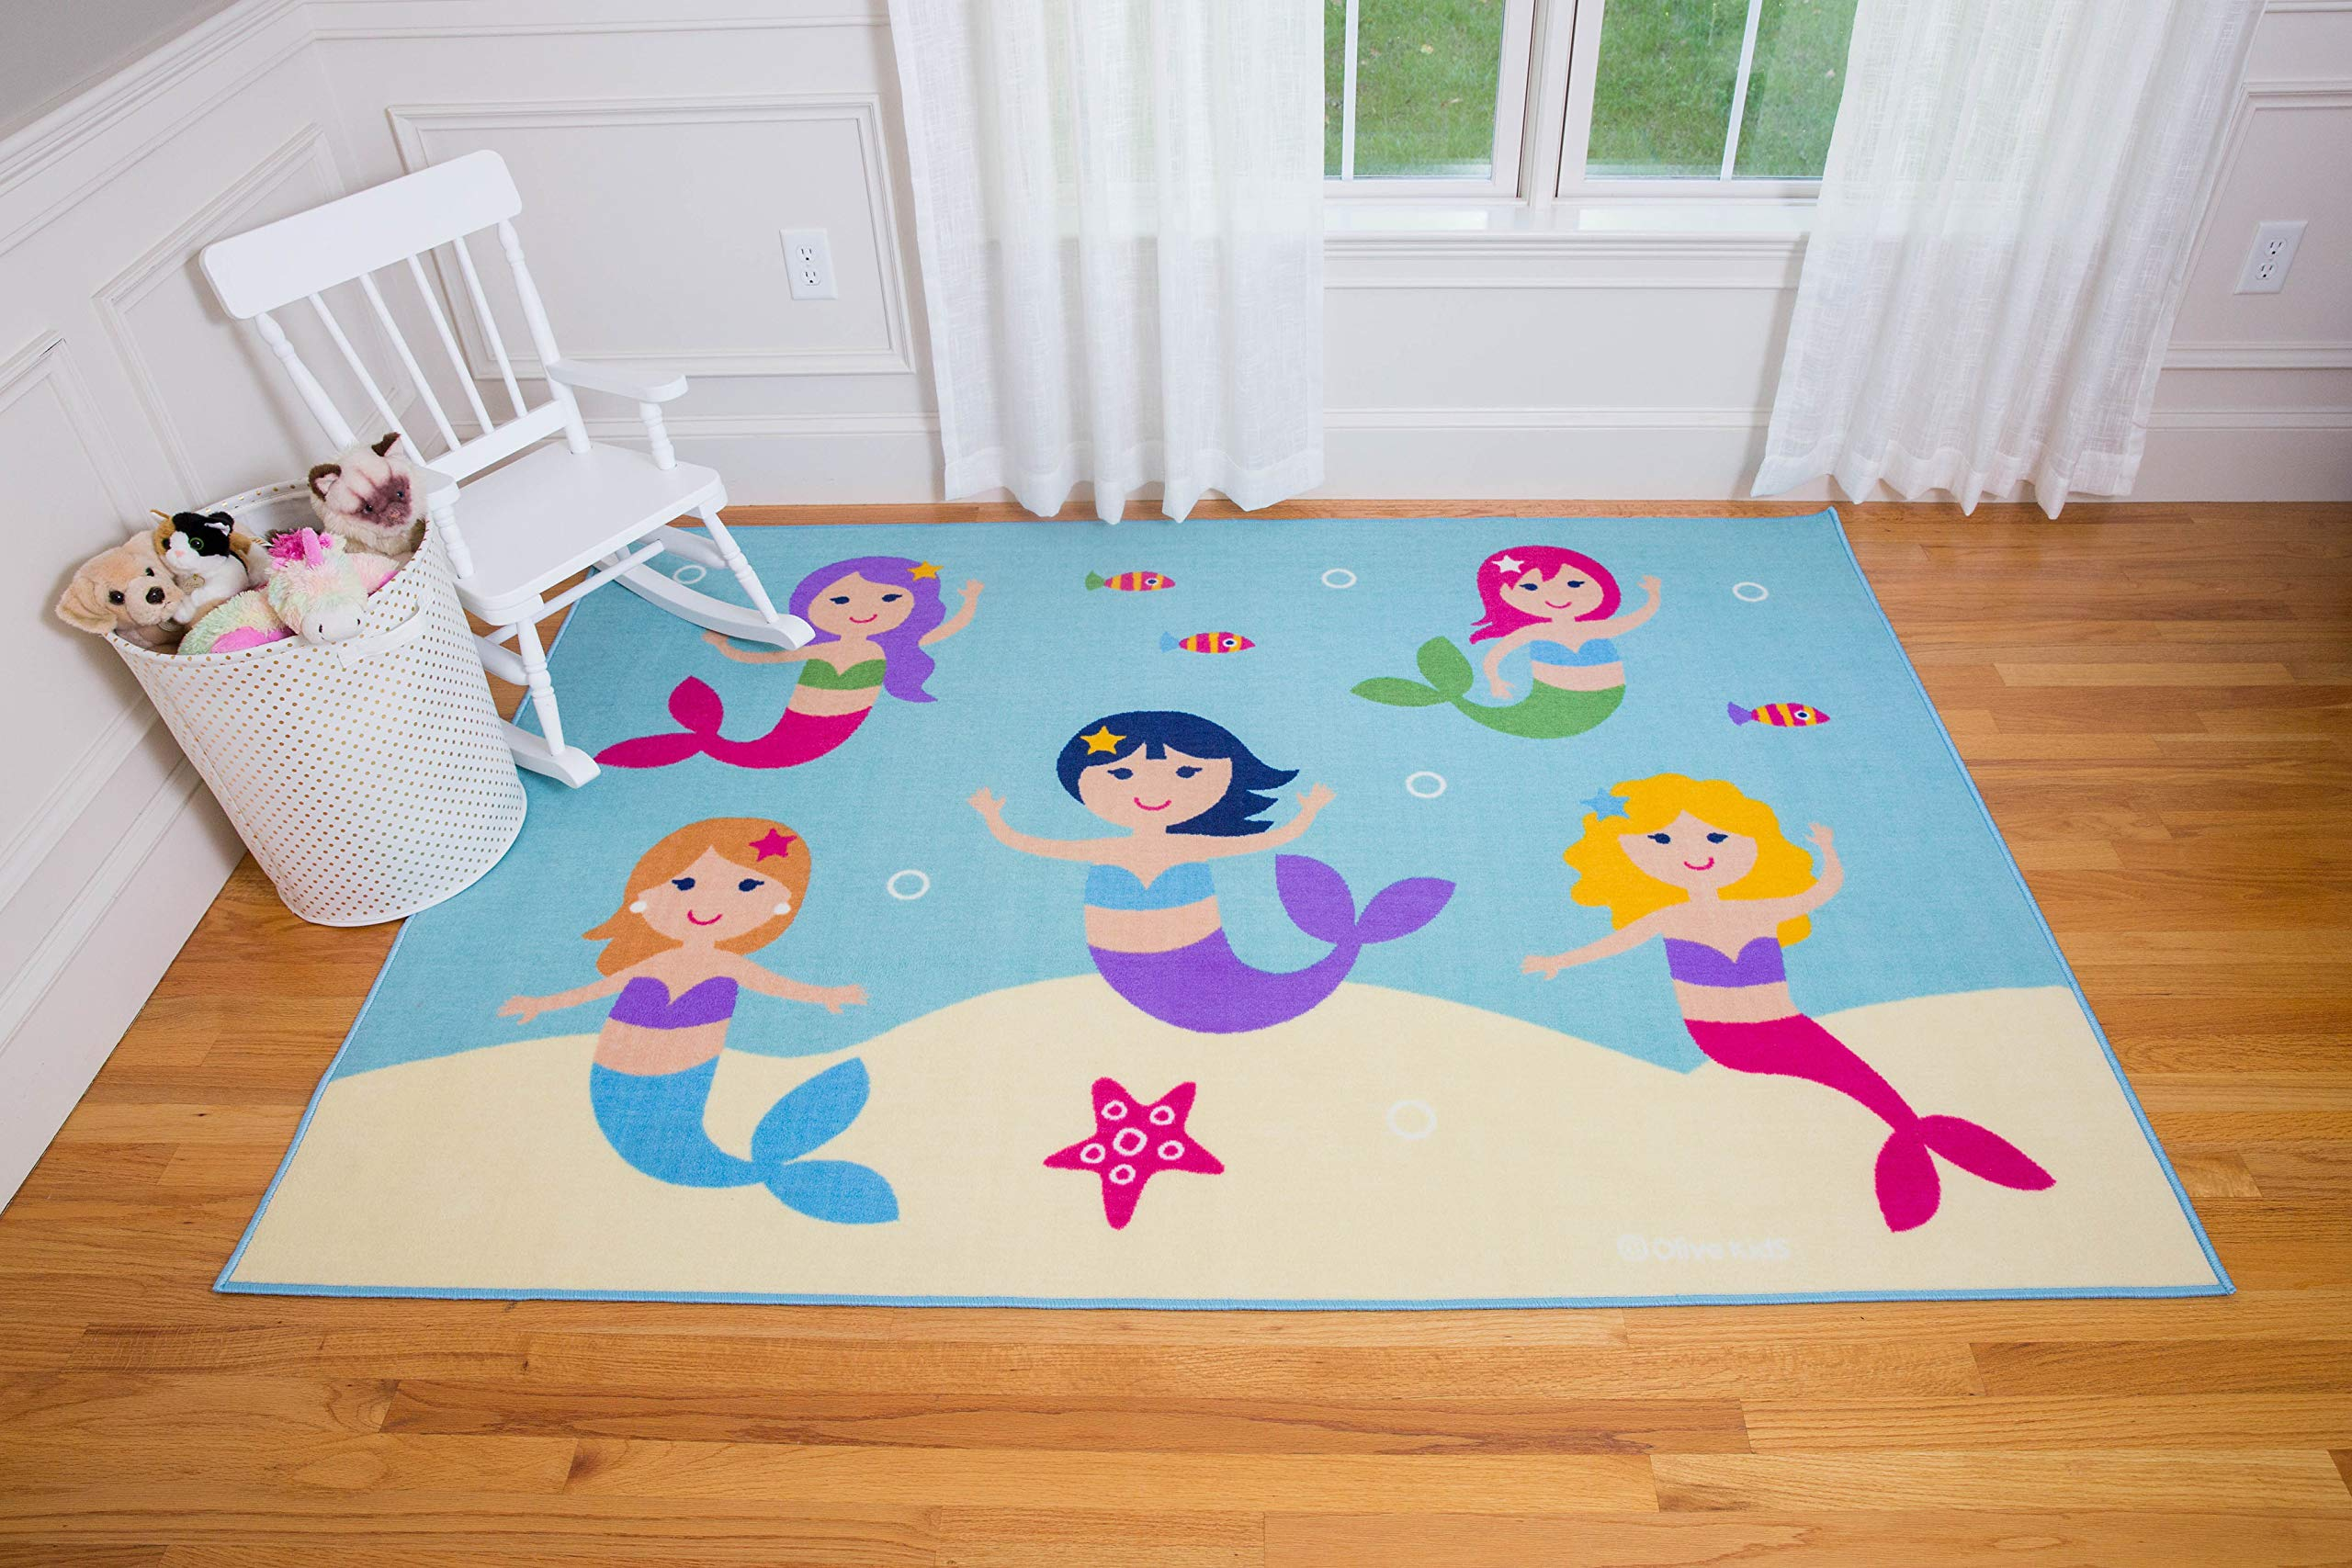 Play Rug, Wildkin Children's 39 x 58 Inch Rug, Durable, Vibrant Colors That Will Last, Perfect for Nurseries, Playrooms, and Classrooms, Ages 3+, Olive Kids Design - Mermaids